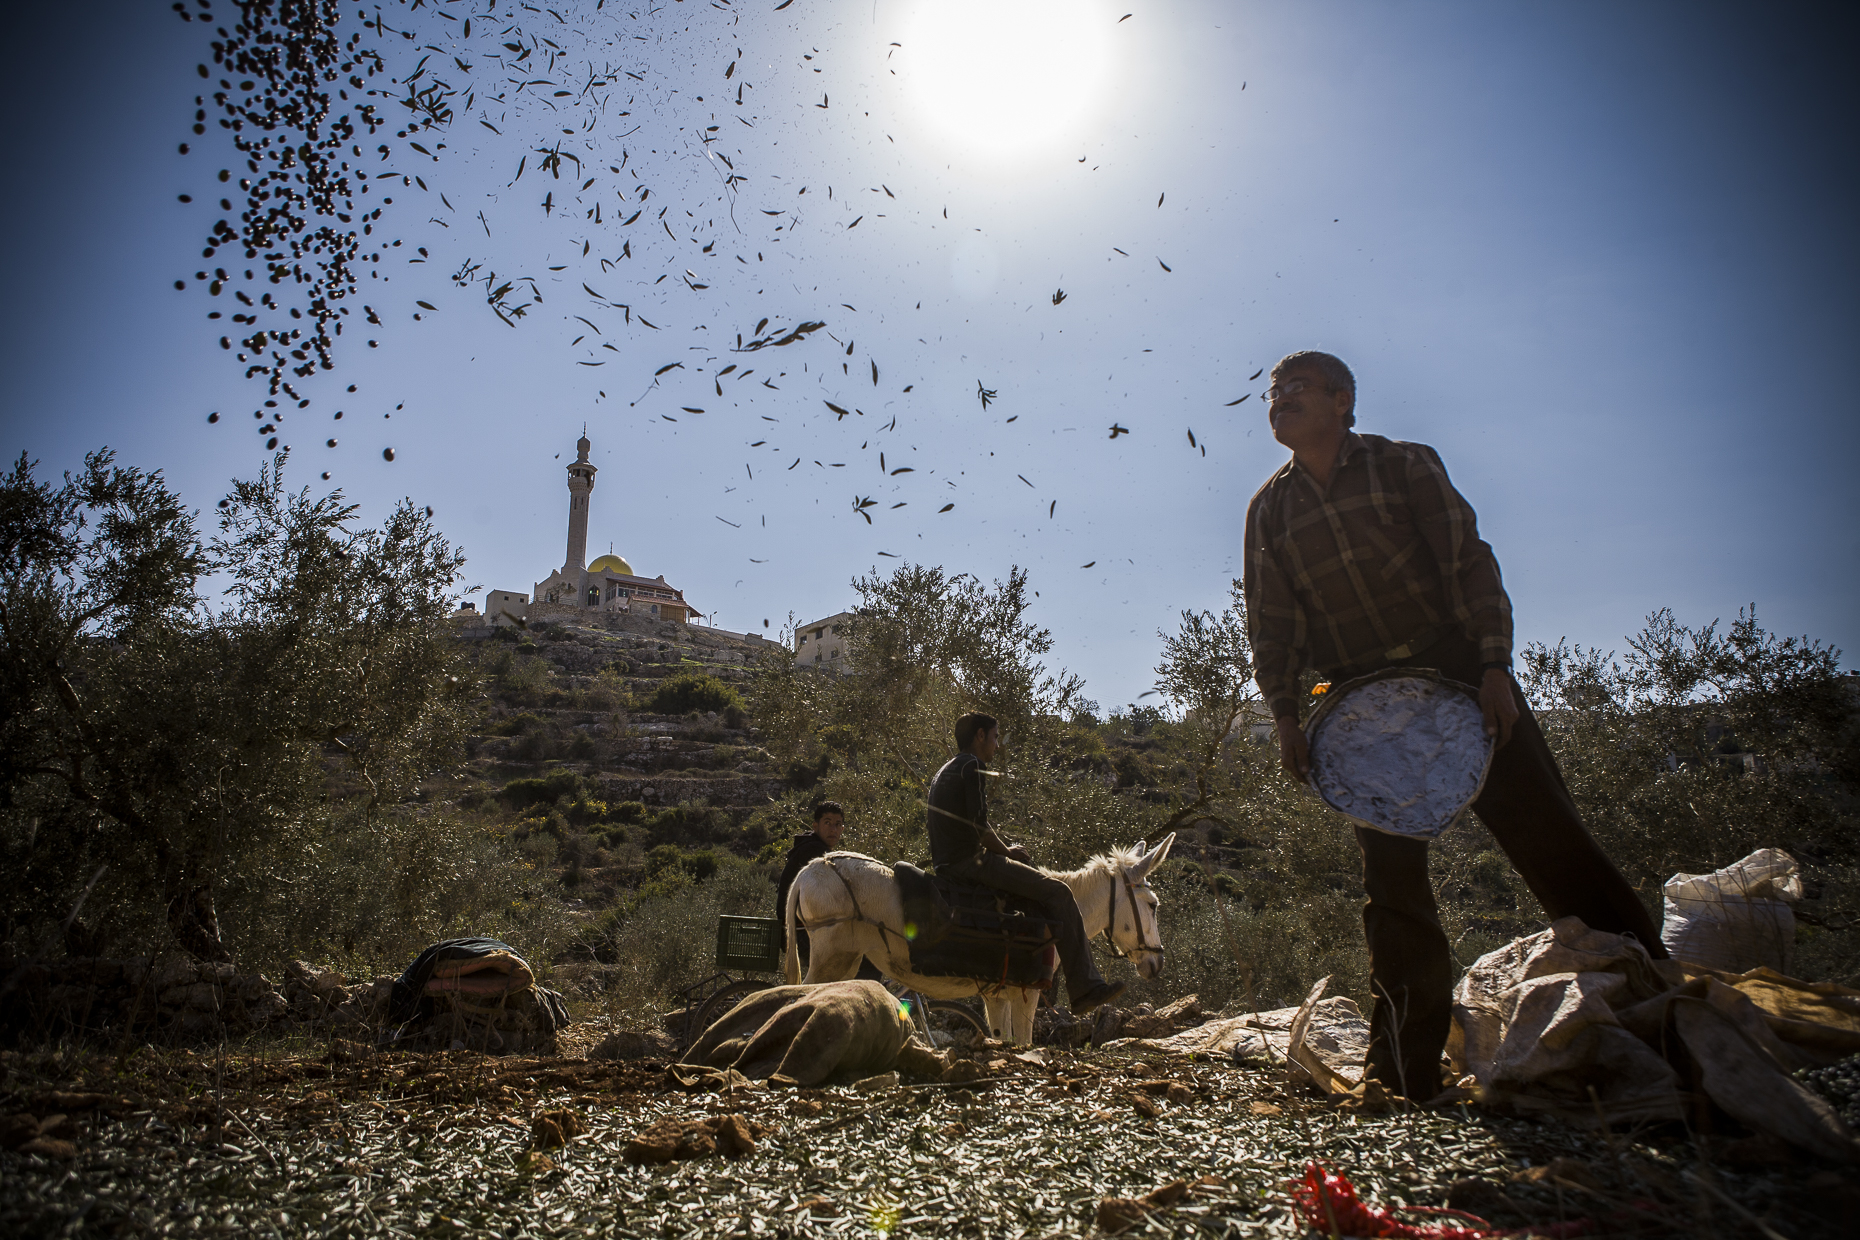 Olive farmer, West Bank